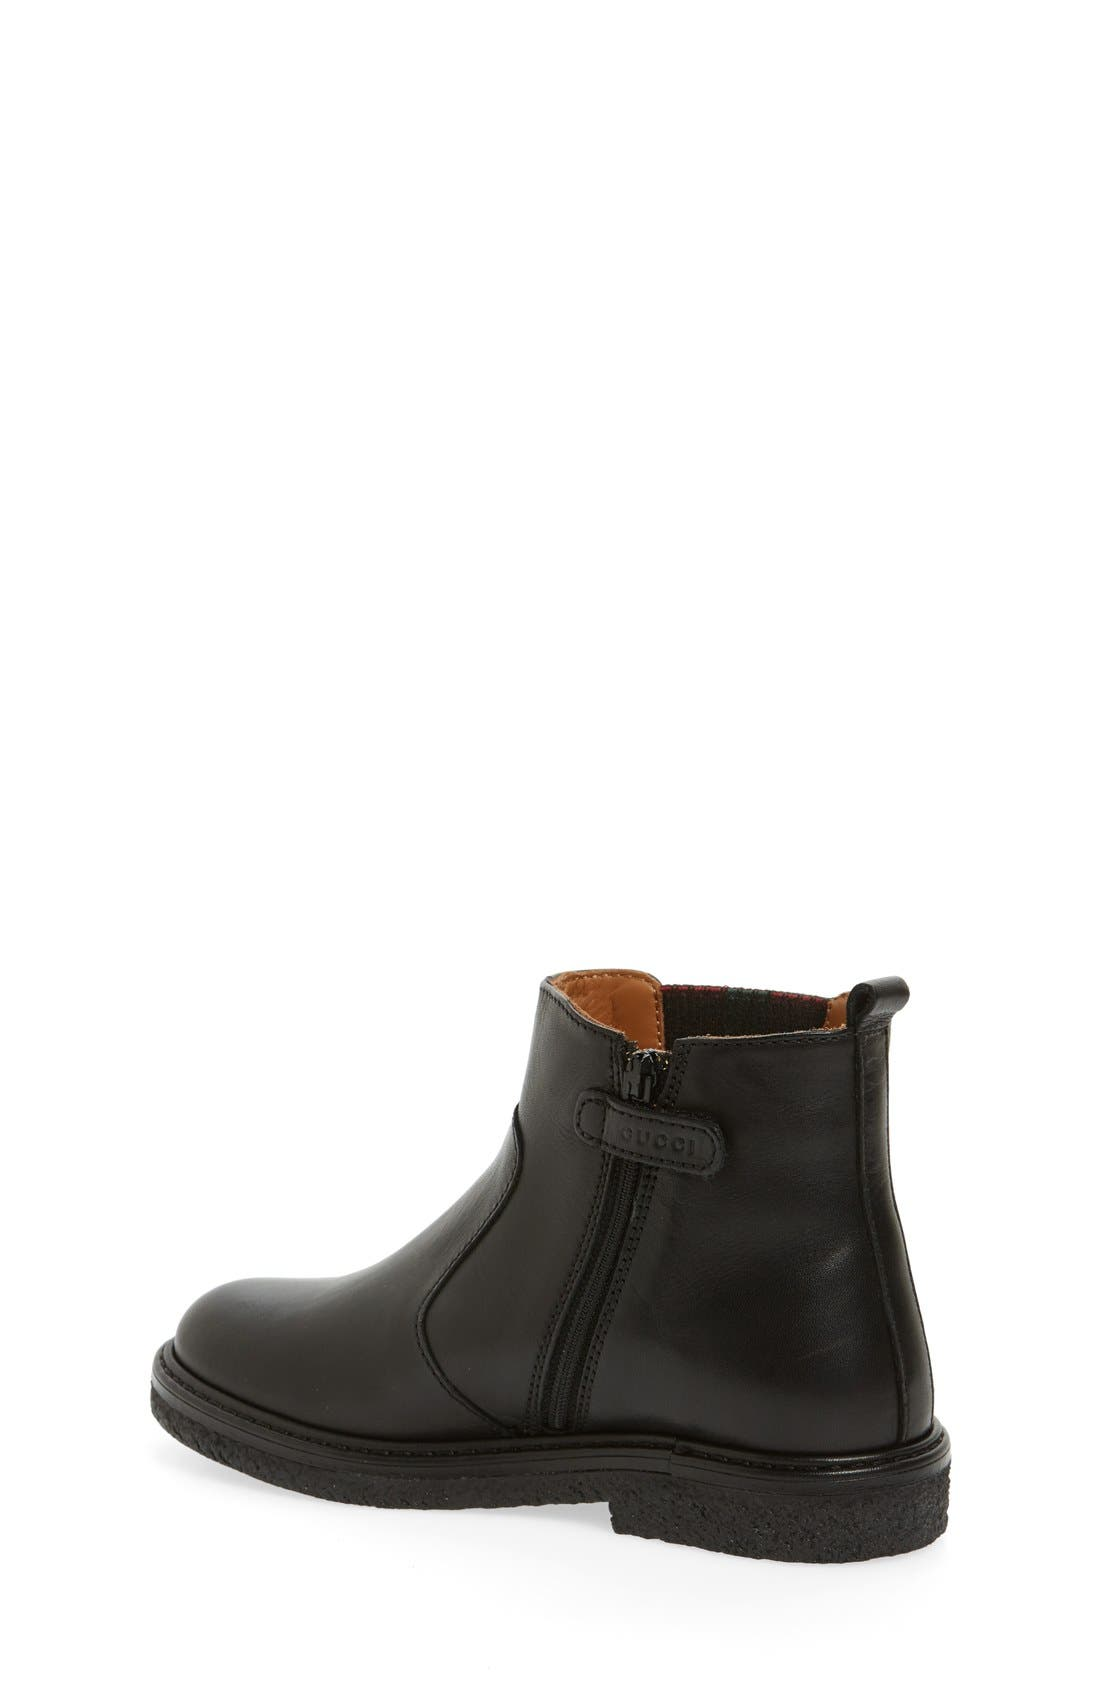 'Joshua' Chelsea Boot,                             Alternate thumbnail 3, color,                             001